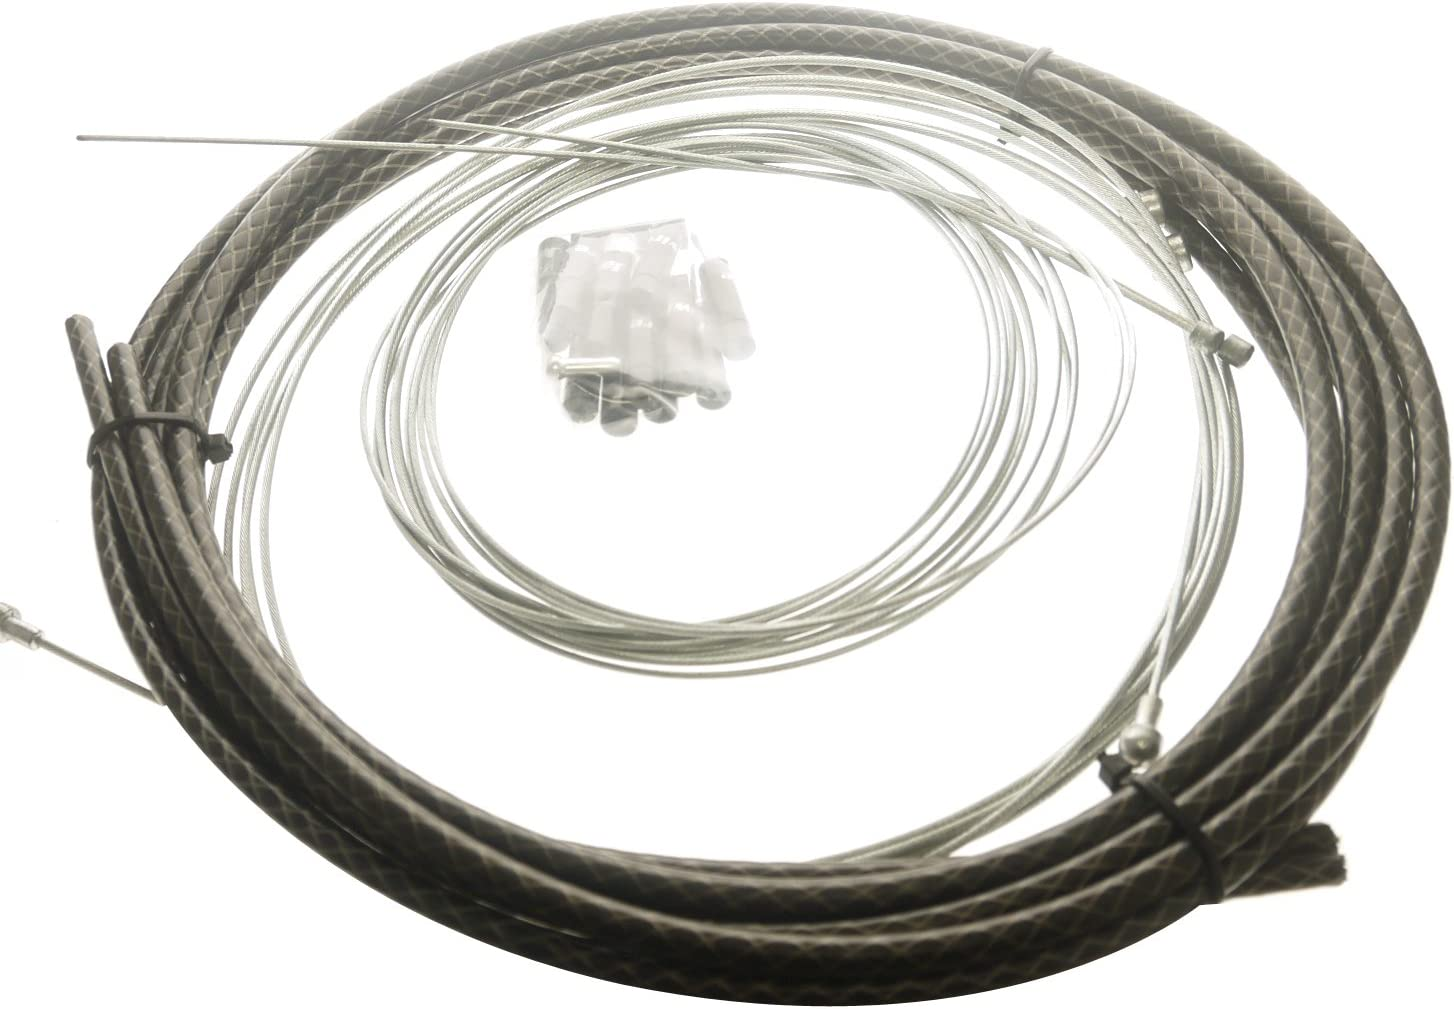 cable Braided housing kit-*OEM*-Braided Black New Jagwire brake shifter